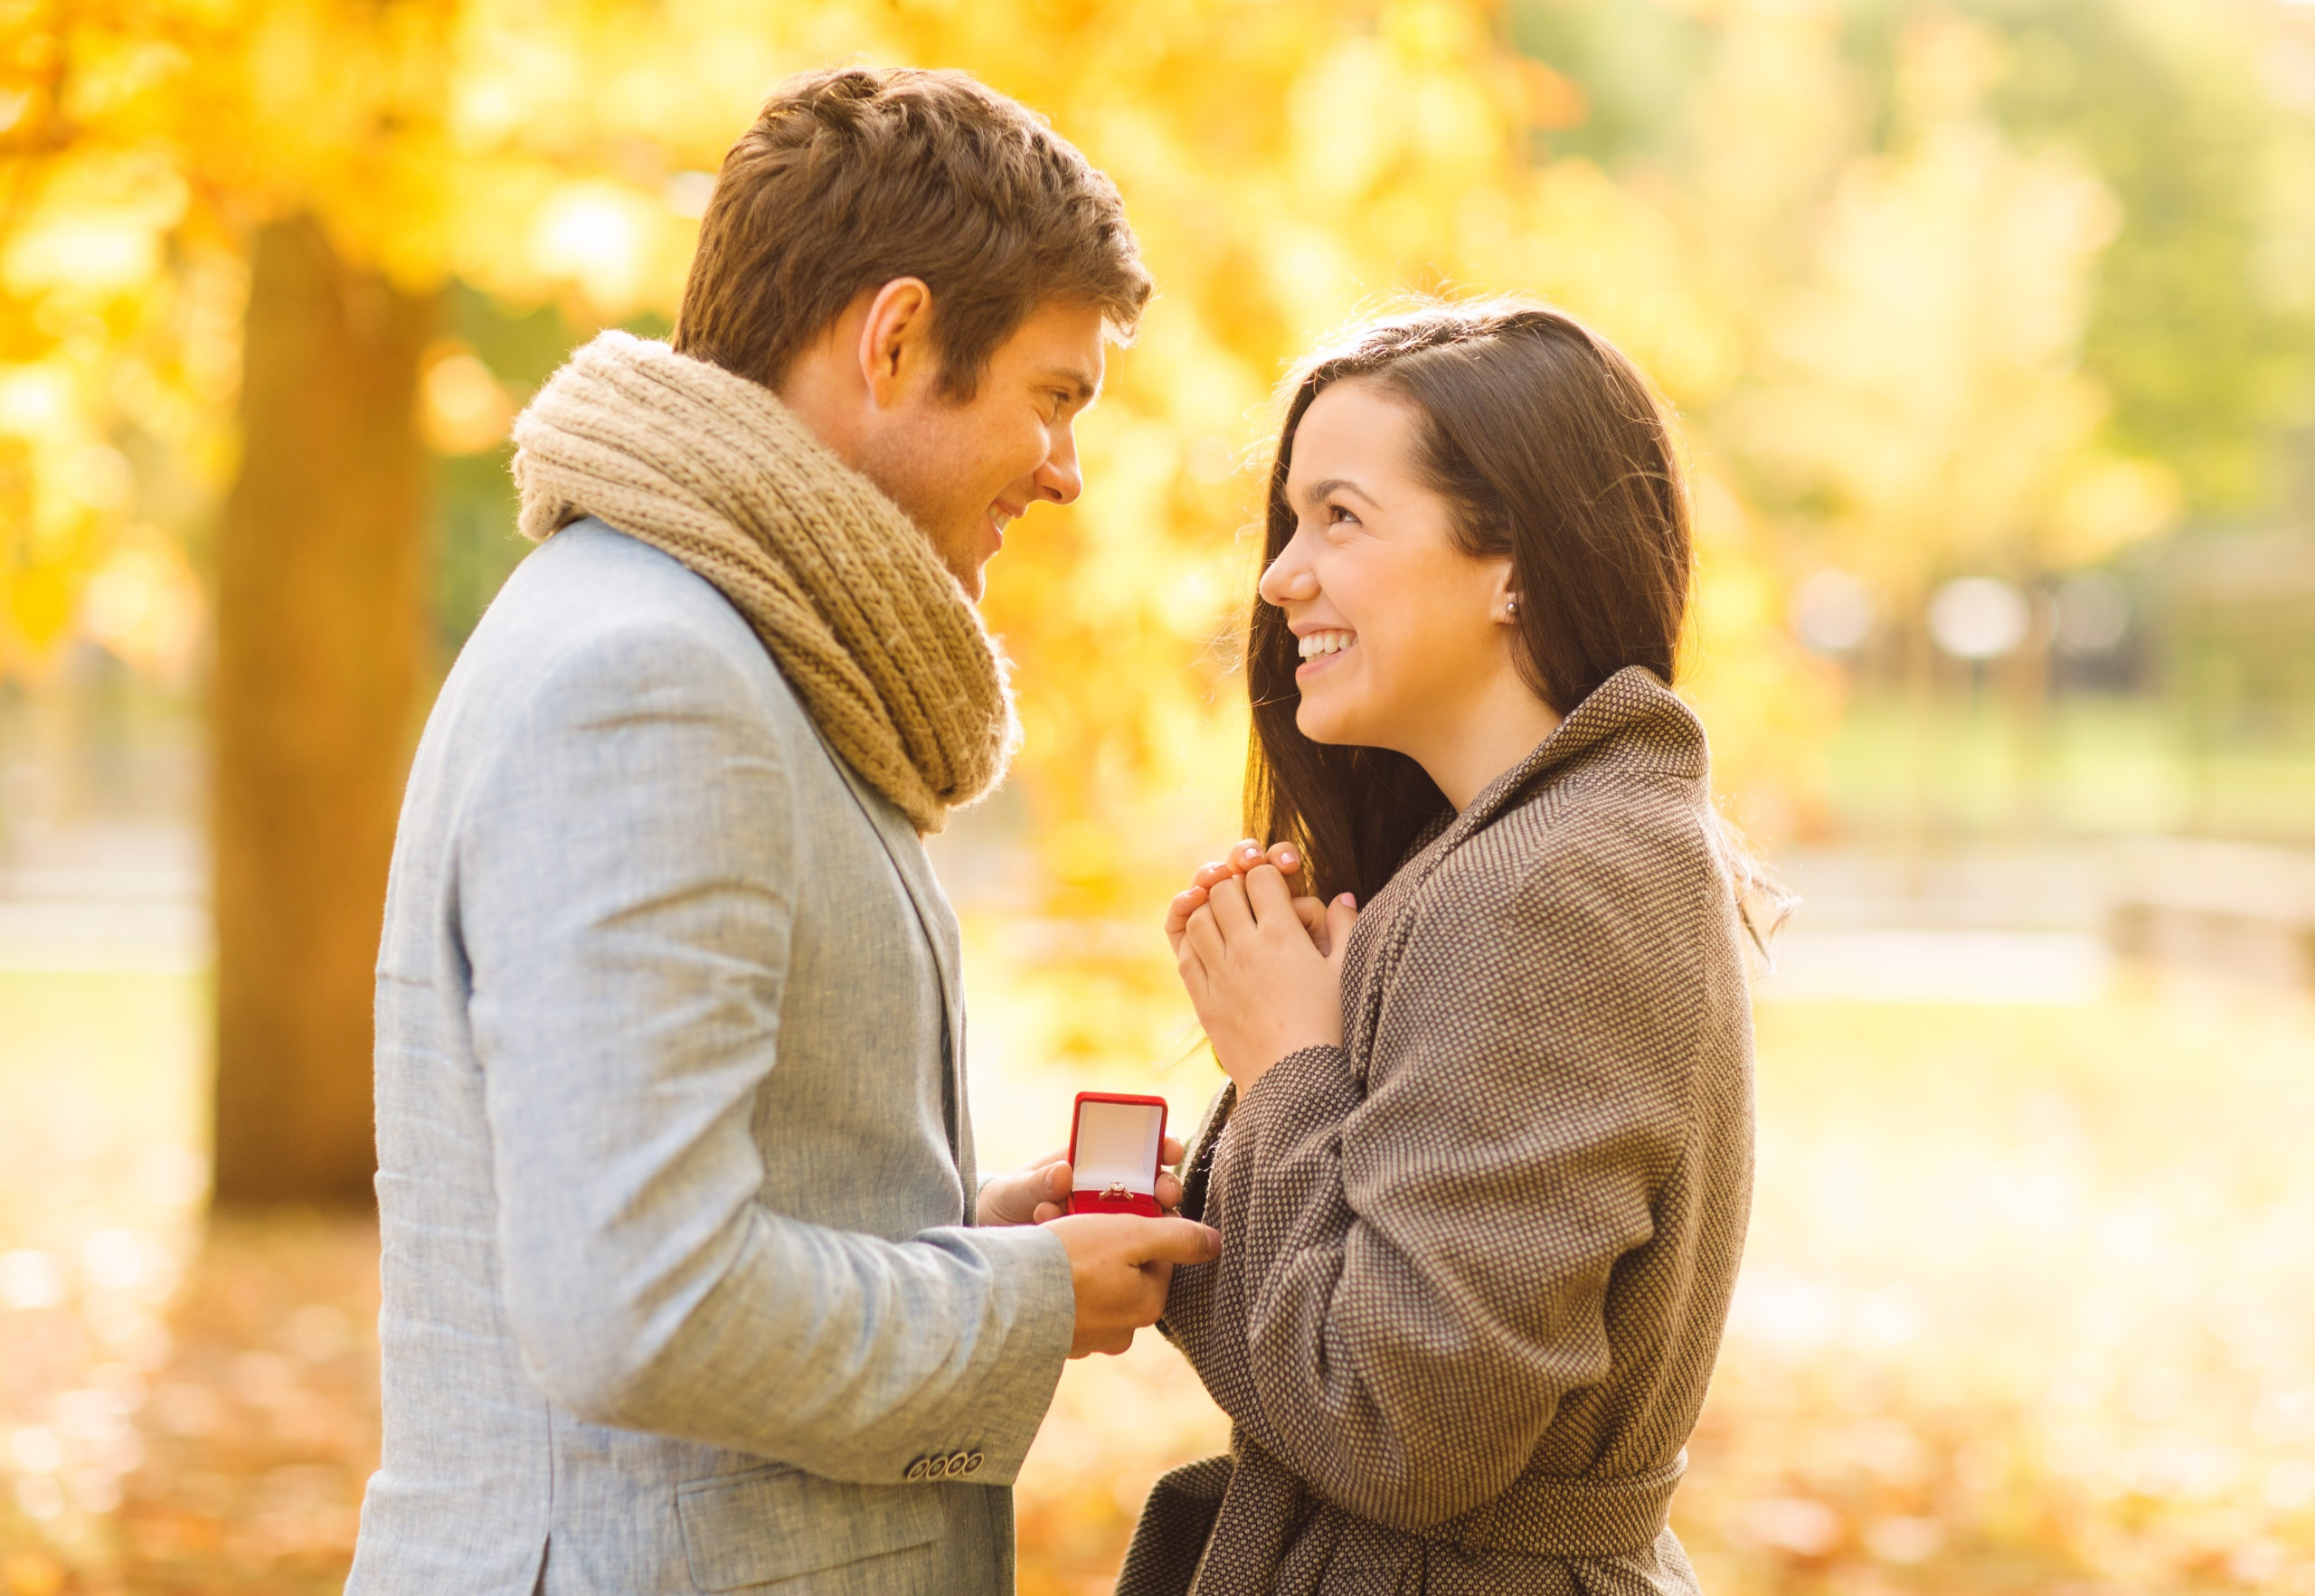 holidays-love-couple-relationship-dating-concept-159375620